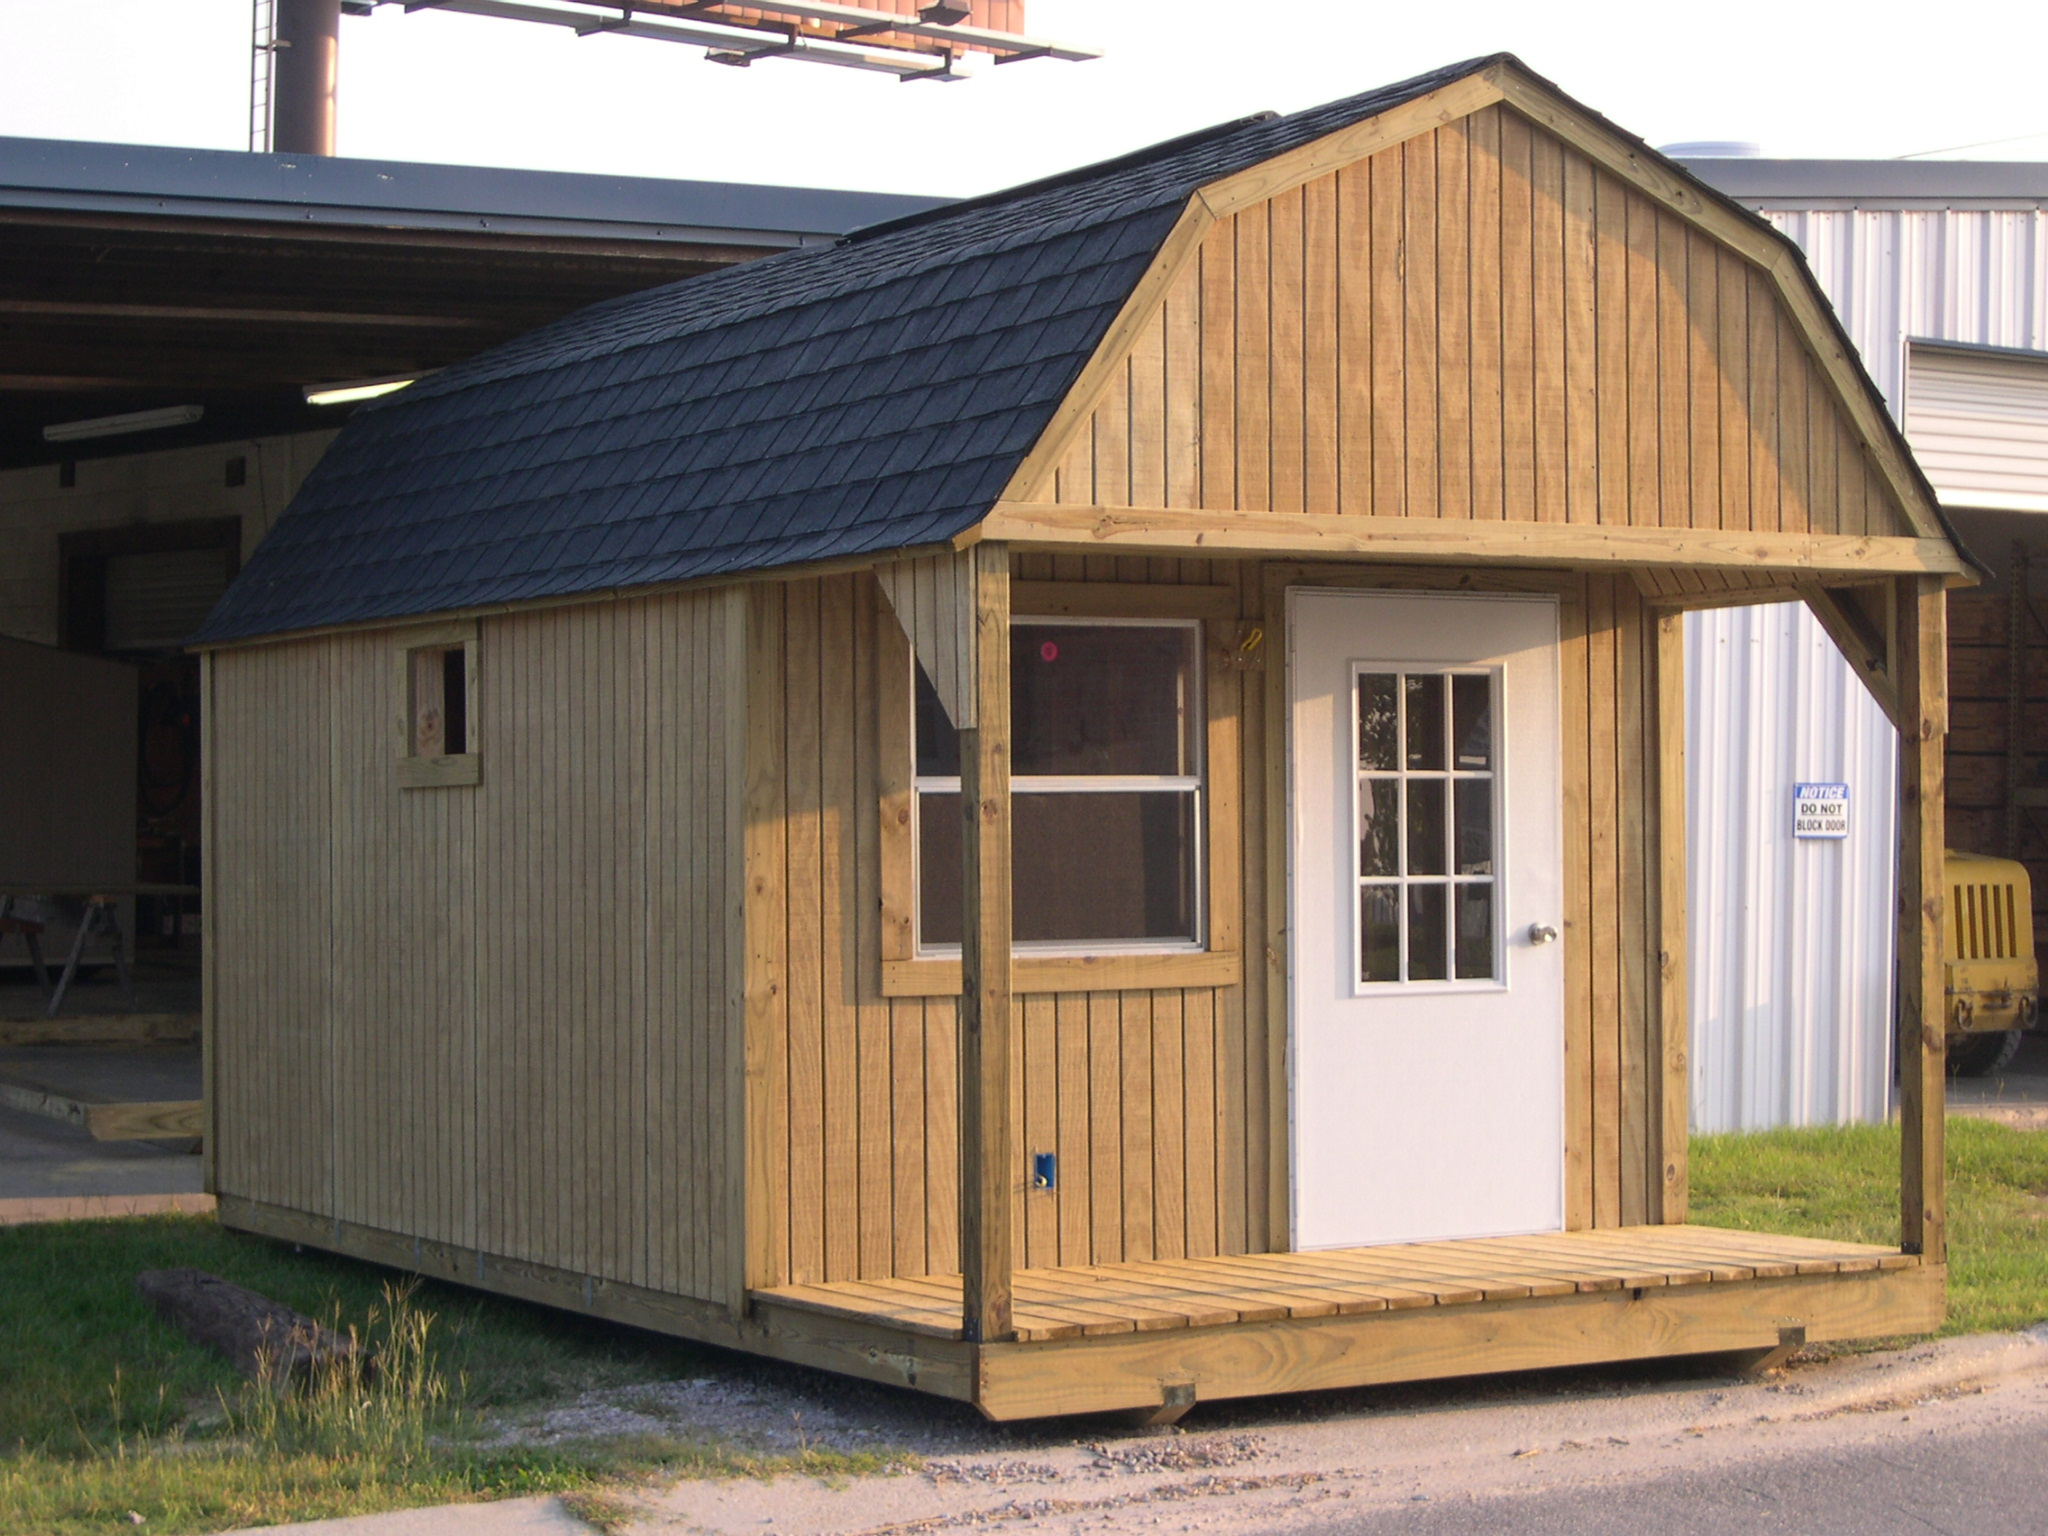 Woodwork building plans wood storage sheds pdf plans Wooden homes to build